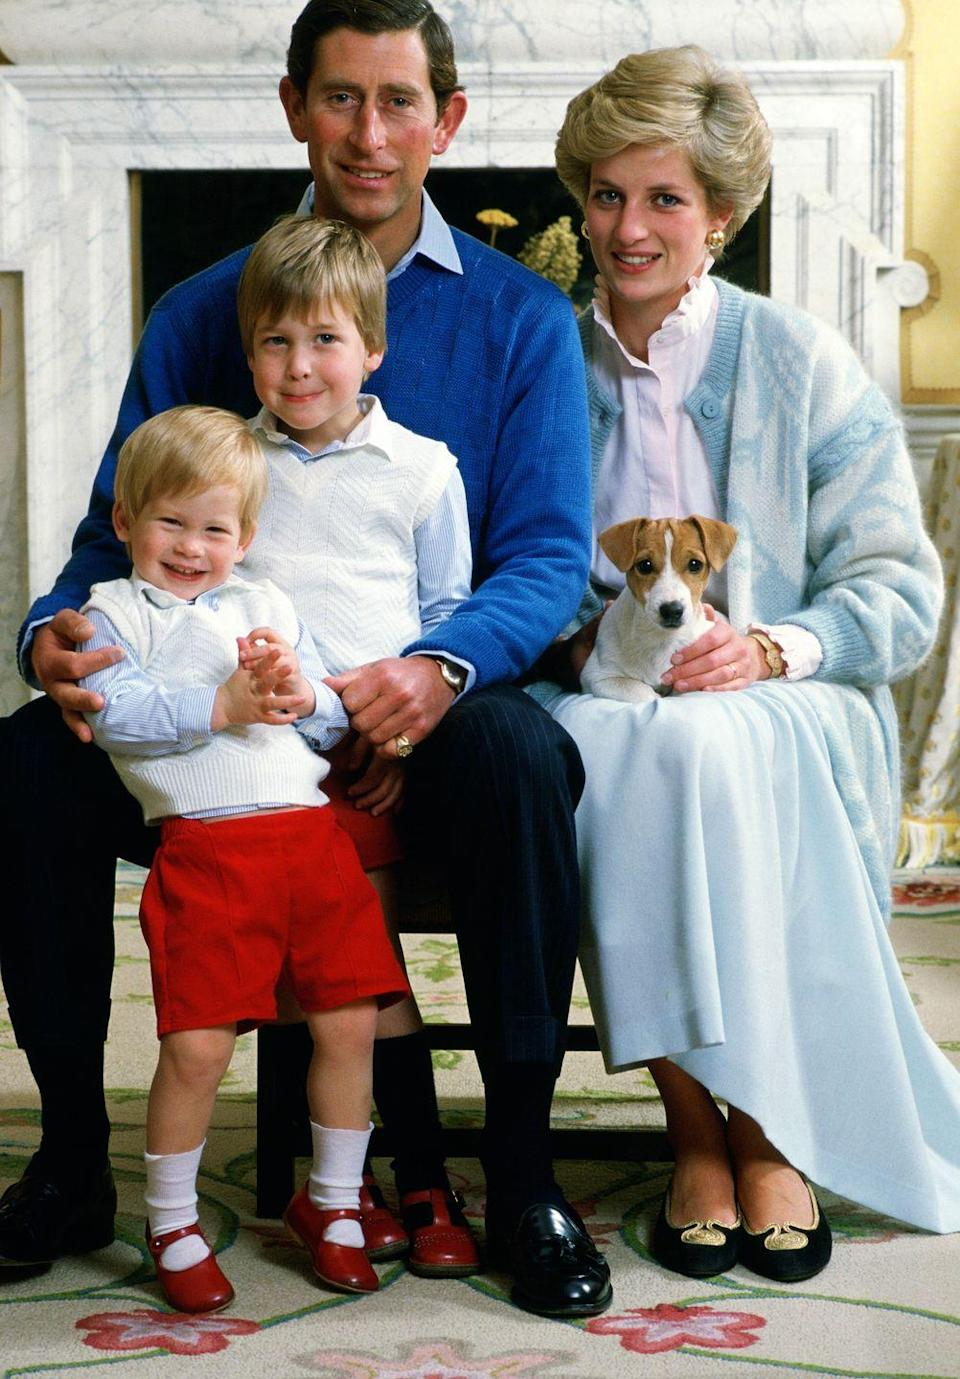 <p>Prince Charles, Princess Diana, Prince William, and Prince Harry pose for a portrait at home in Kensington Palace with their dog. Harry's mischievous smile is too cute—and so are his and William's matching shoes.</p>